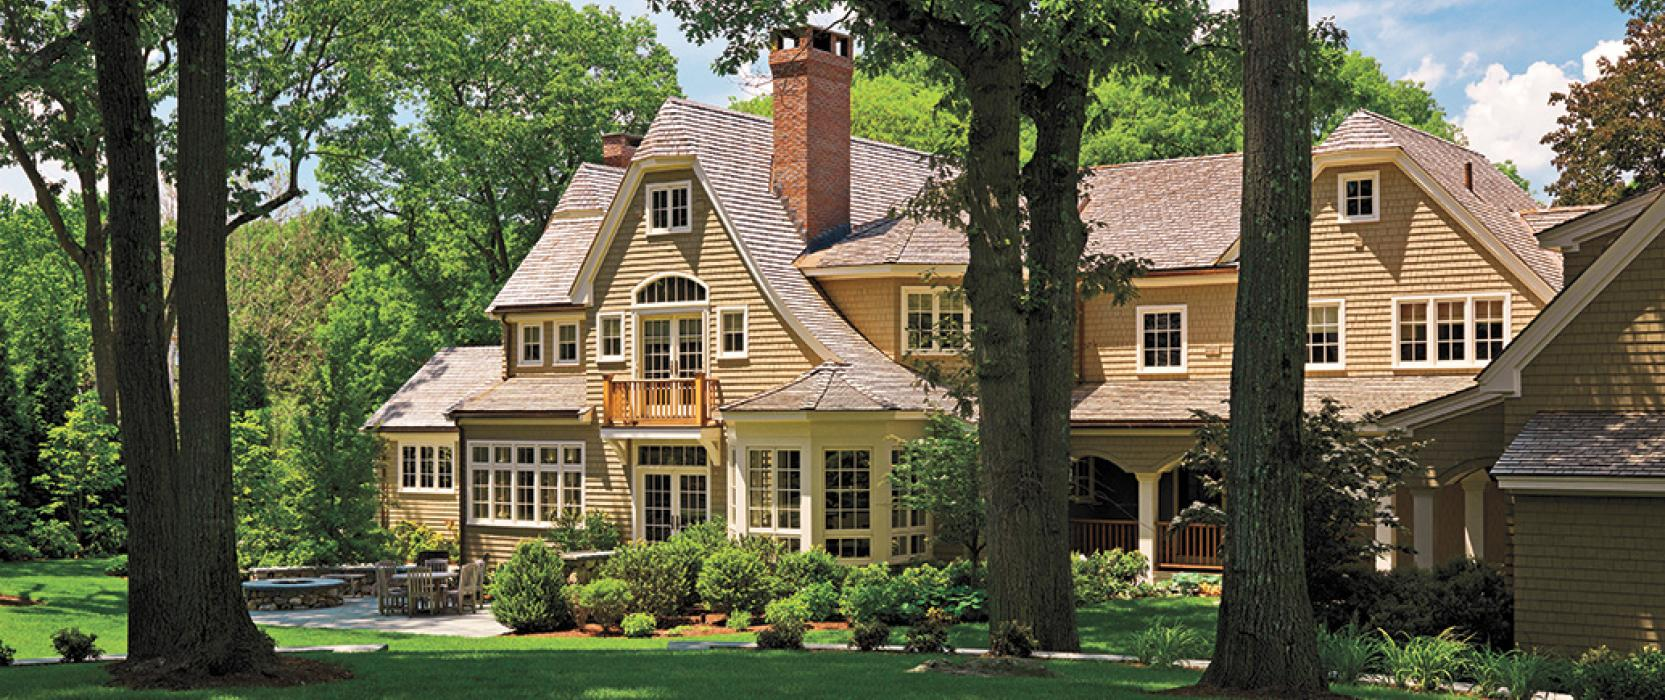 Blog page 2 boston design guide for Classic home designs inc